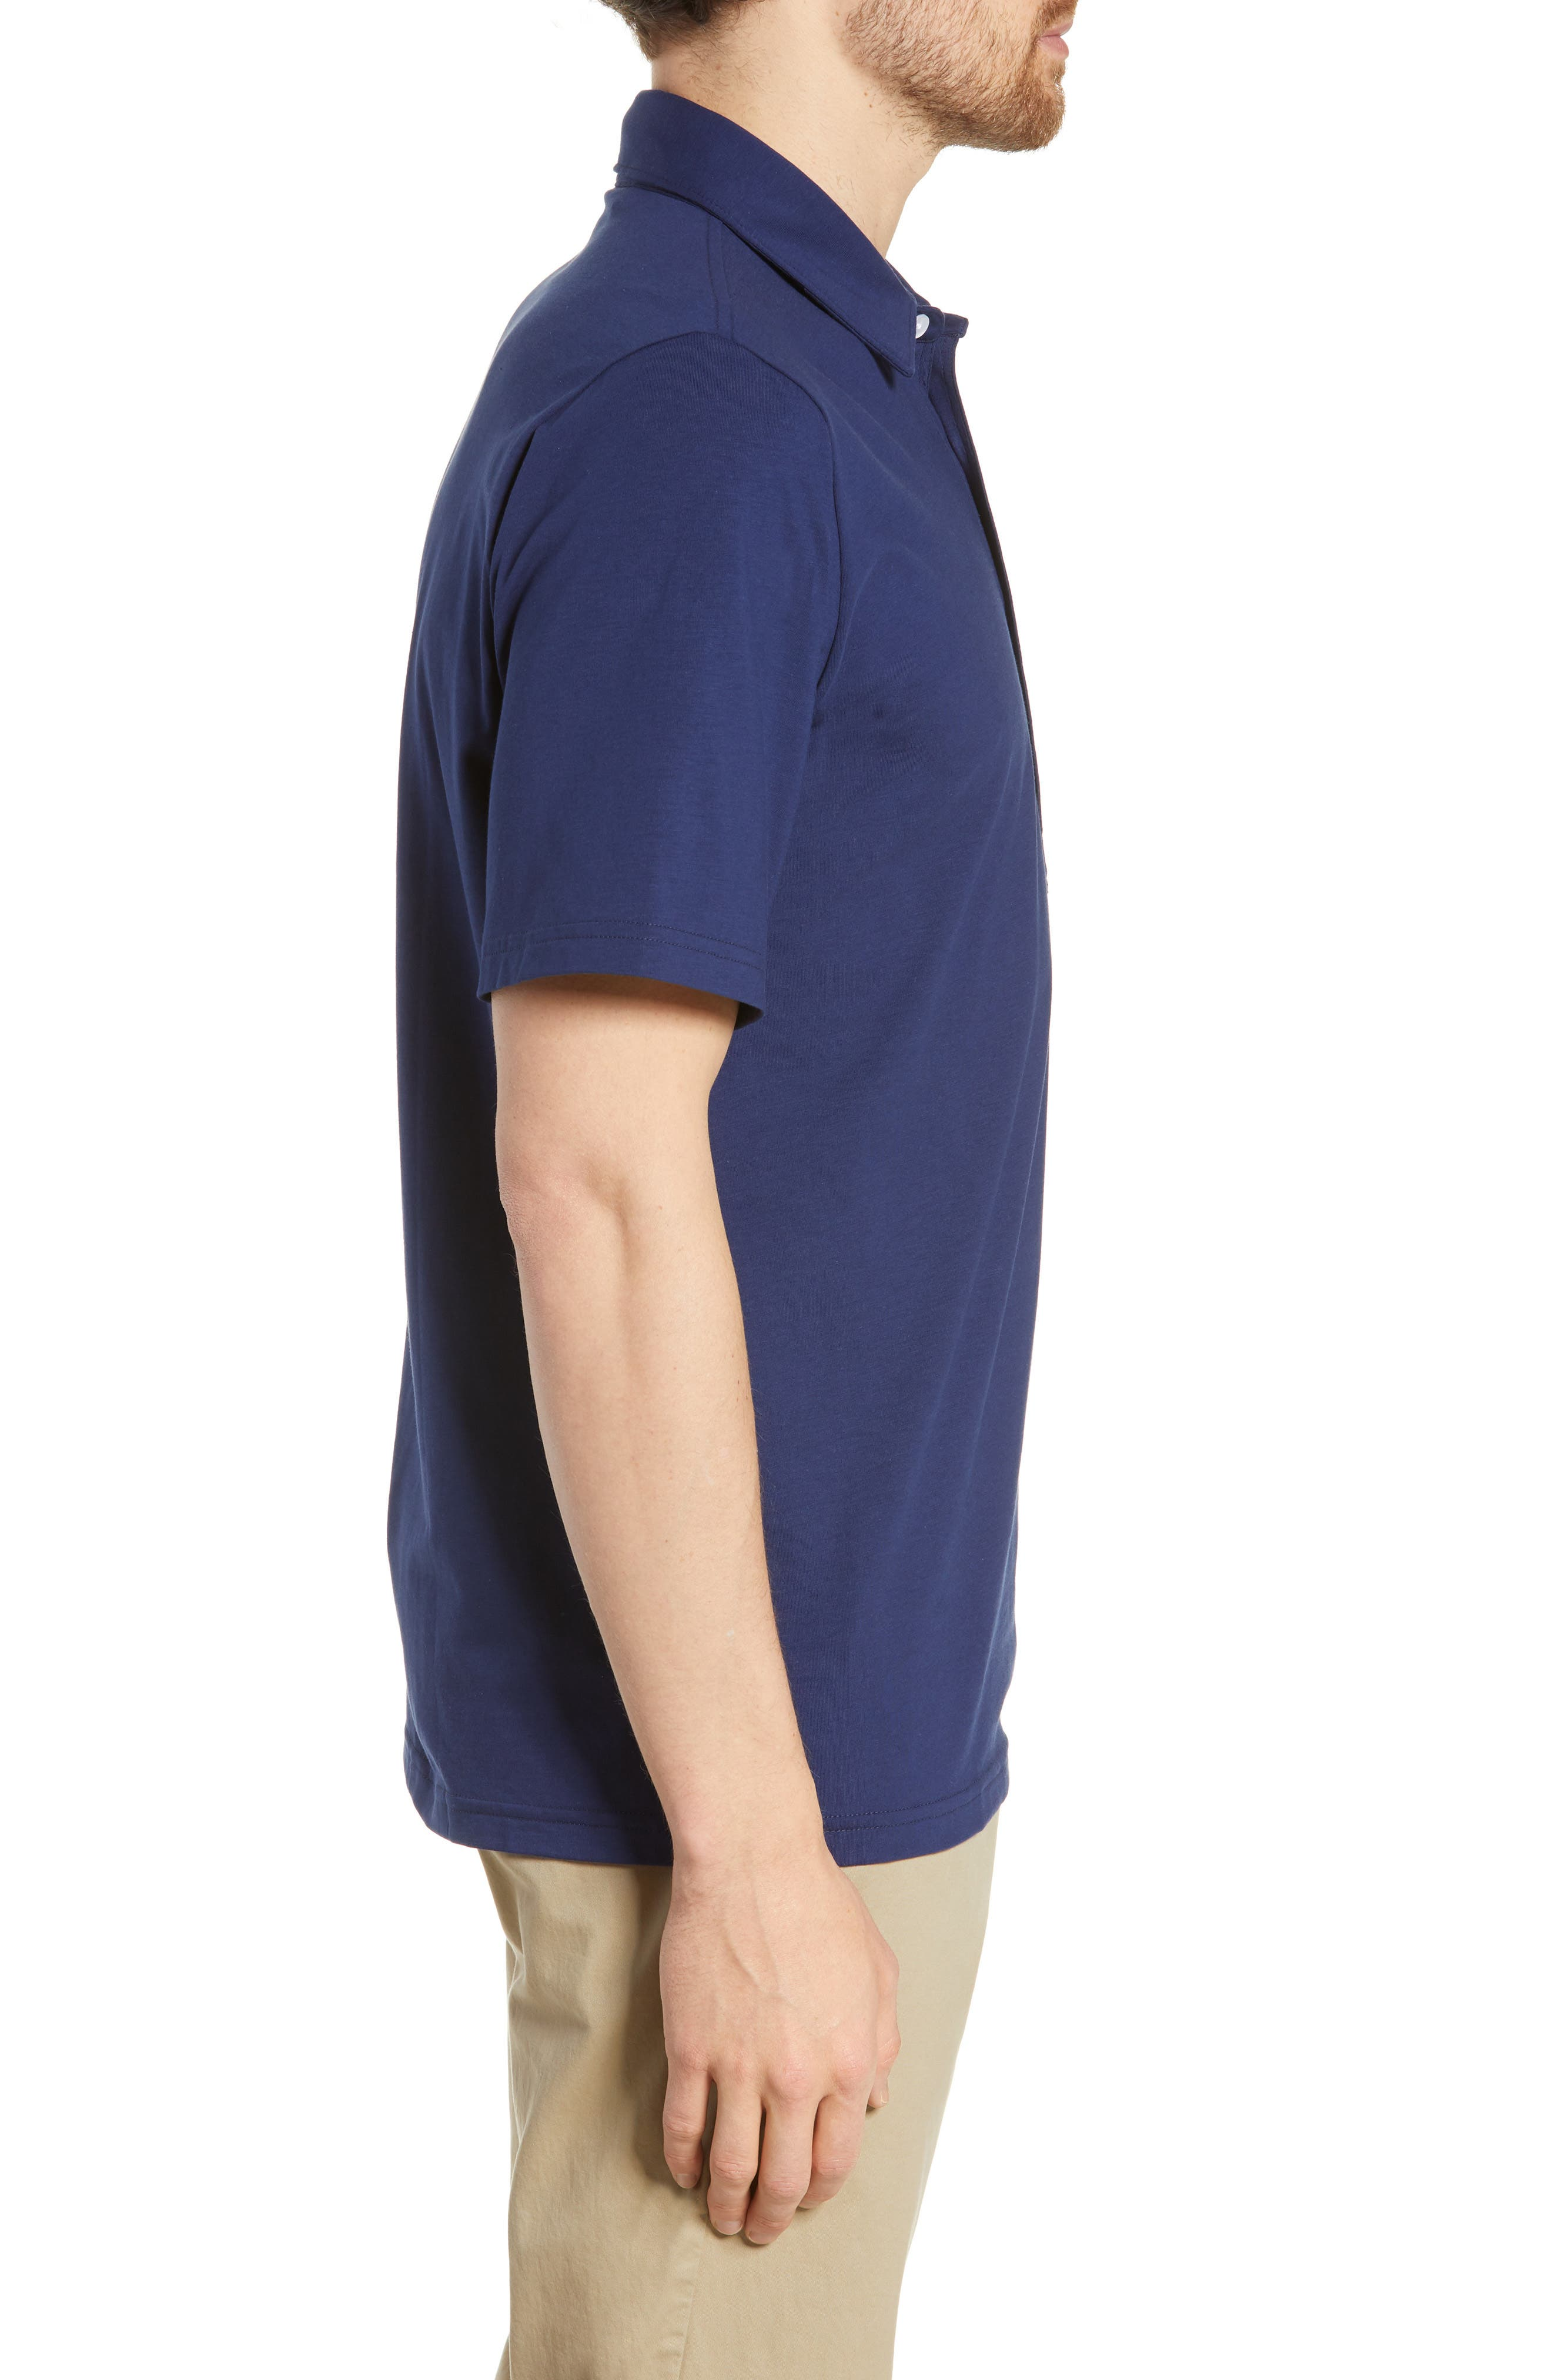 CRIQUET, Players Stretch Jersey Polo, Alternate thumbnail 3, color, NAVY